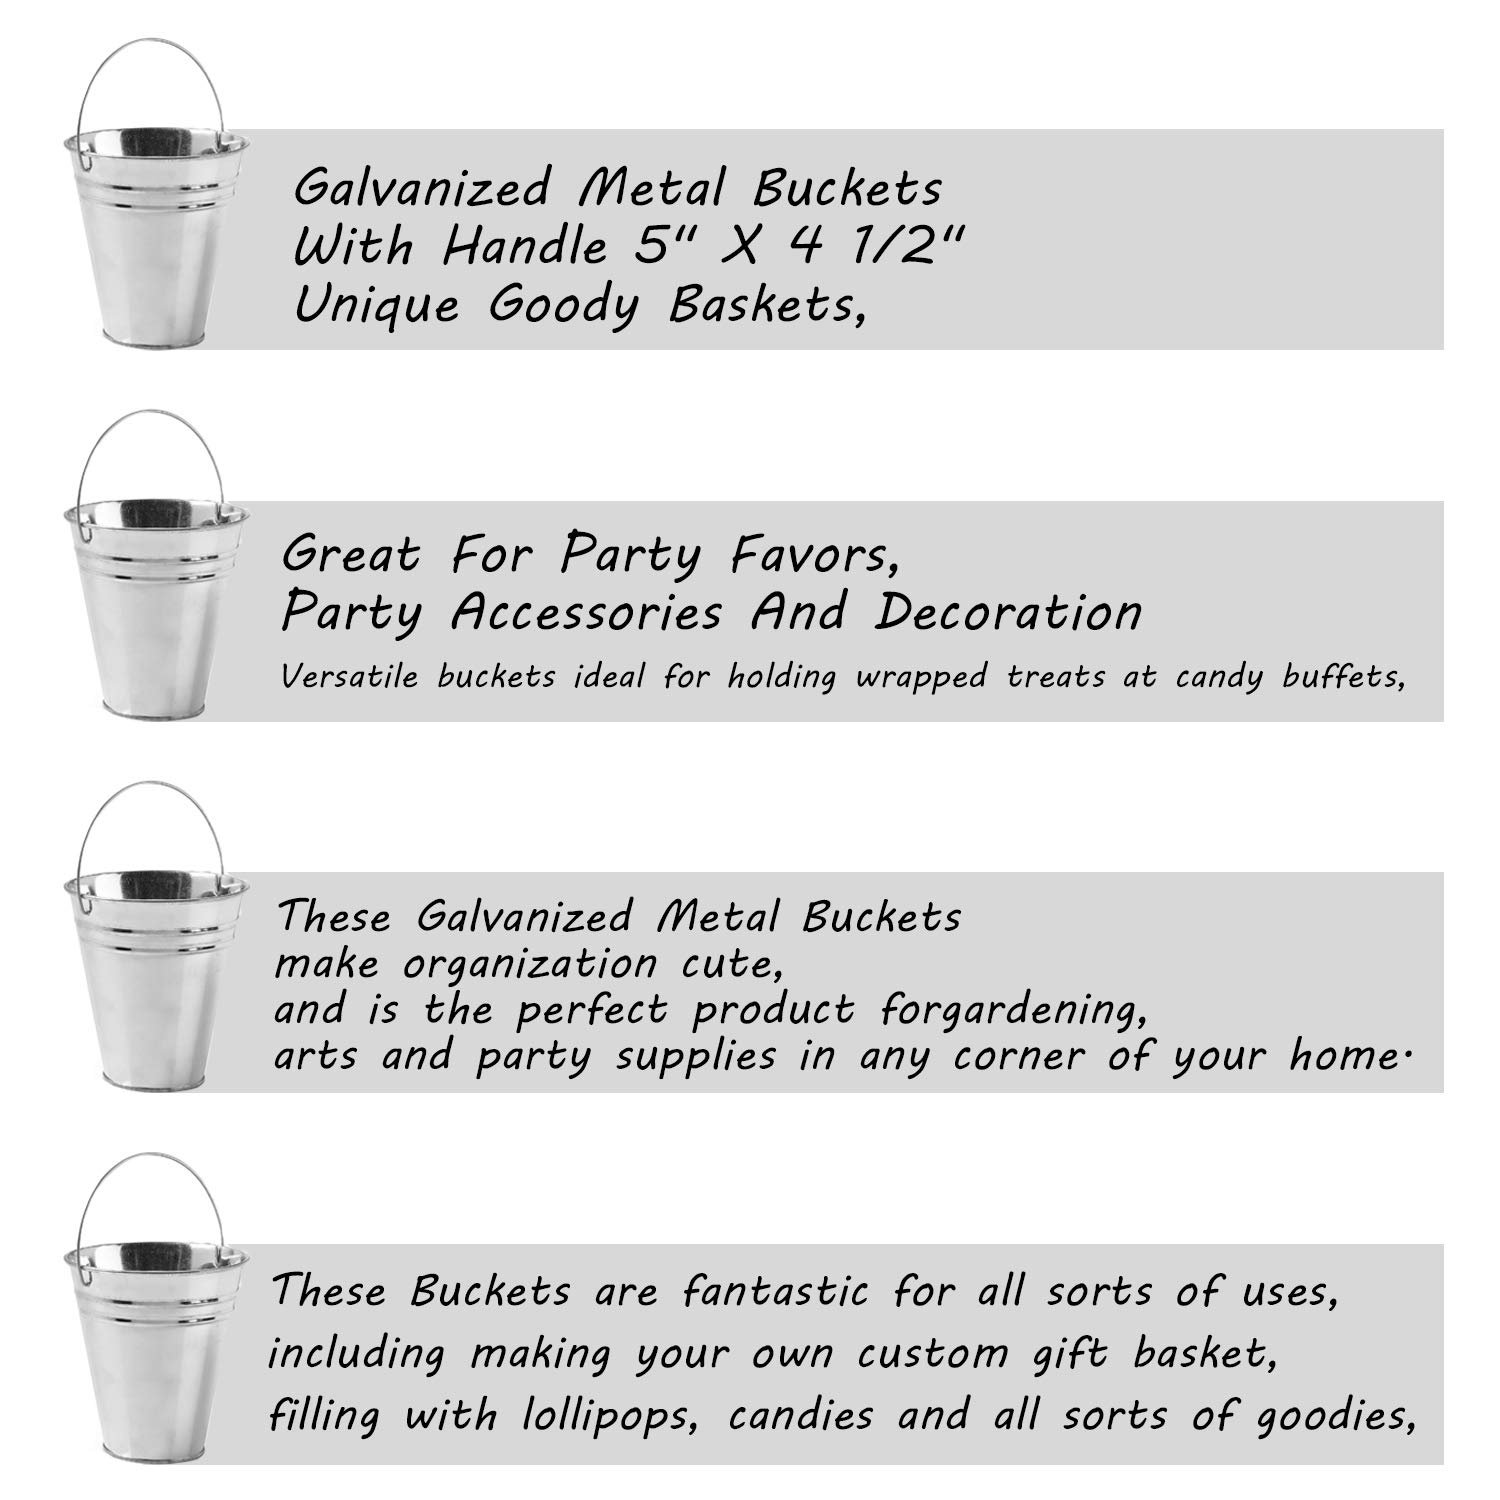 Party Accessories and Decoration Great for Party Favors Kidsco 24-Pack Large Galvanized Metal Buckets with Handle 5 X 4 1//2 Unique Goody Baskets by